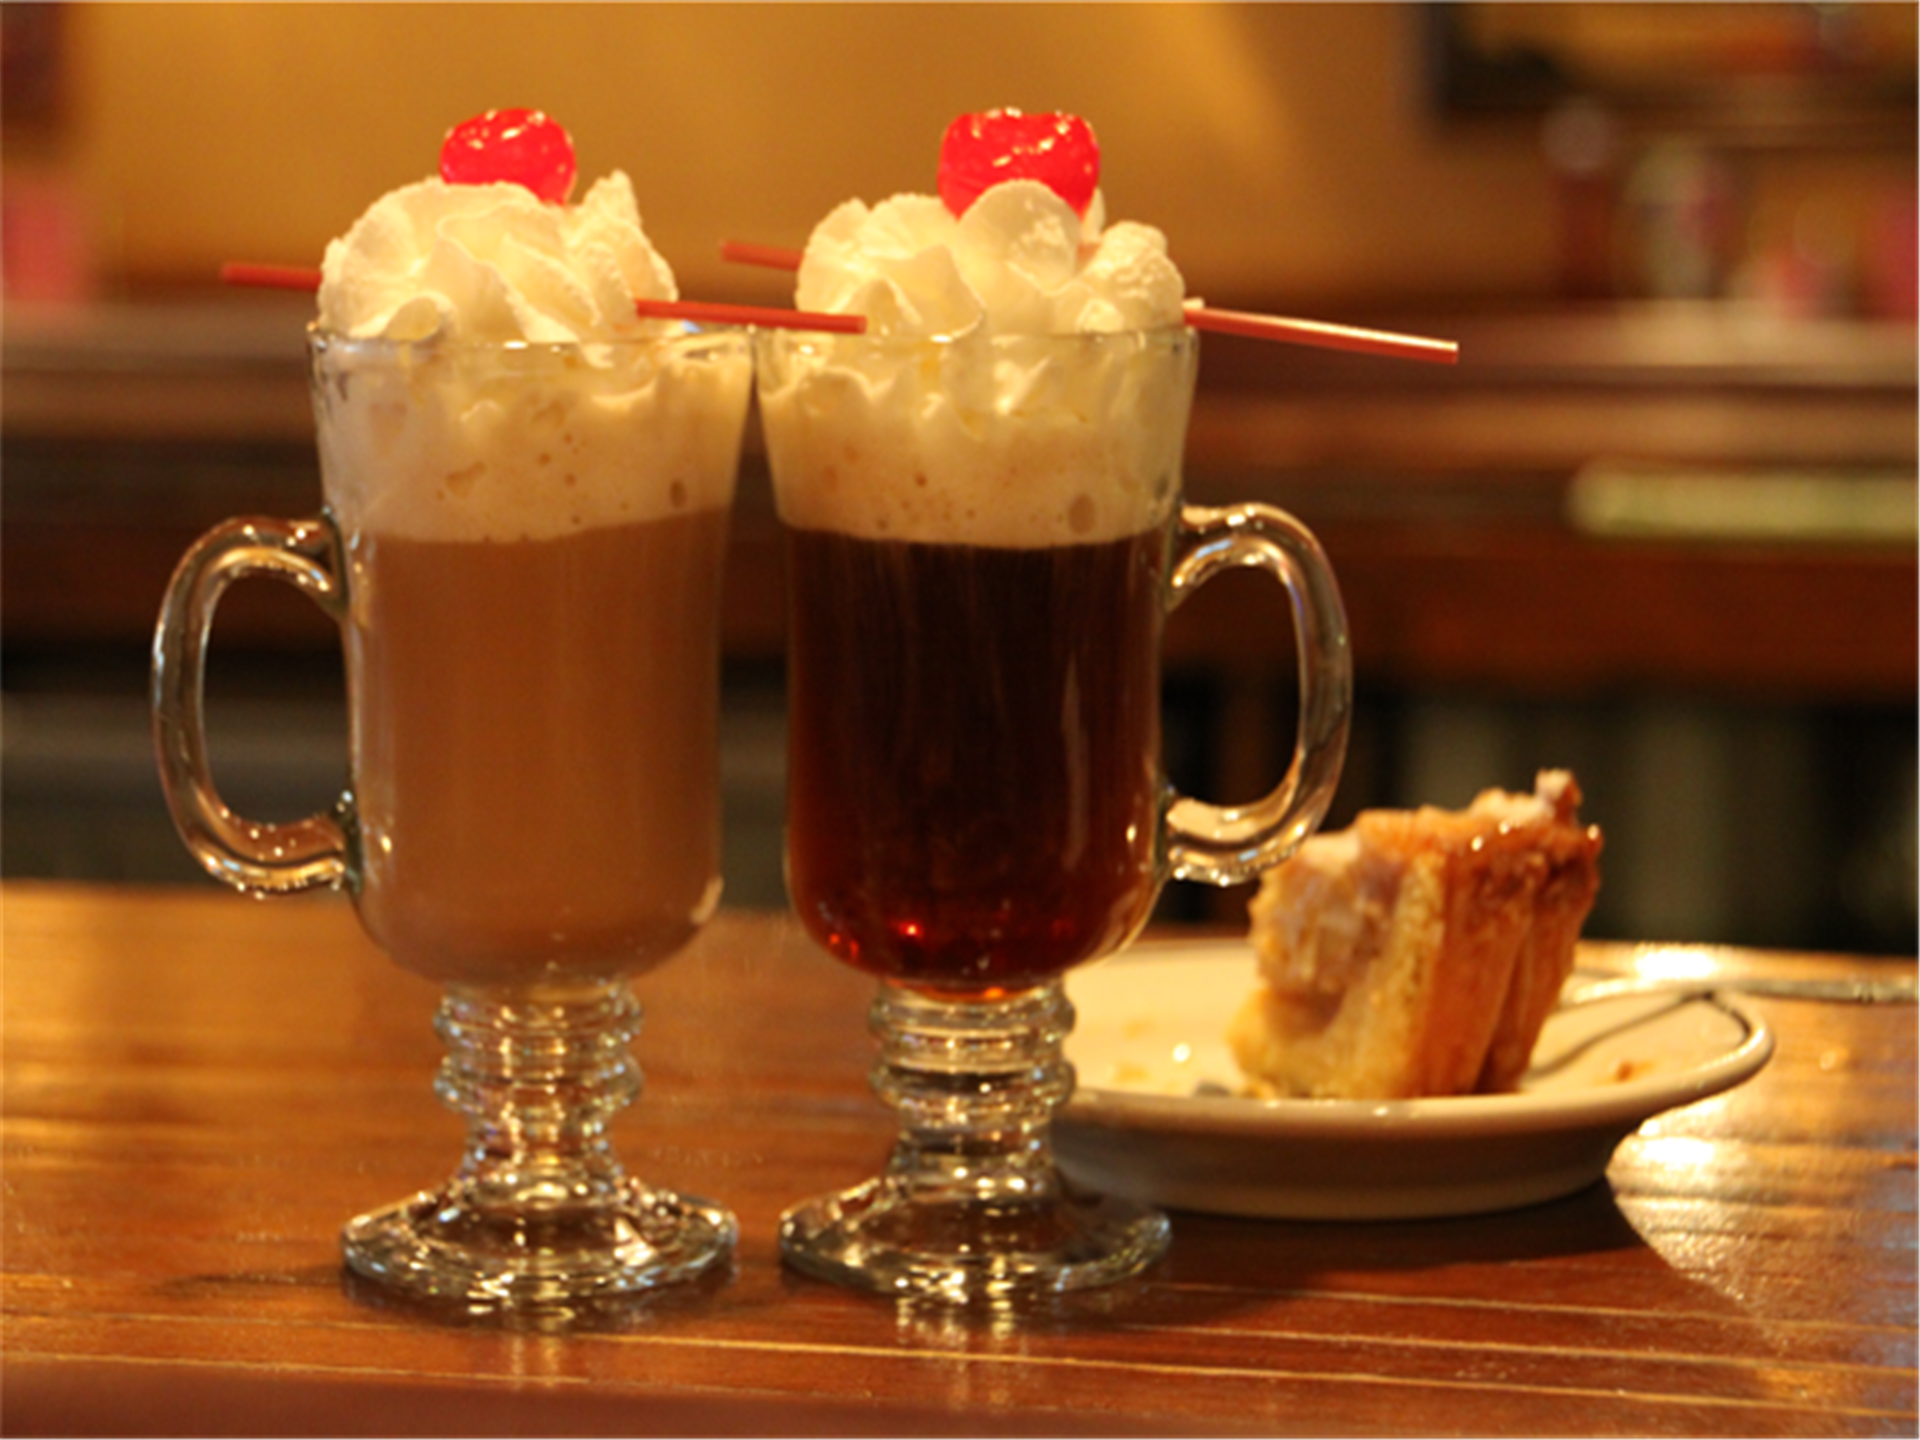 two milkshakes topped with whipped cream and cherries with a piece of cake on a table